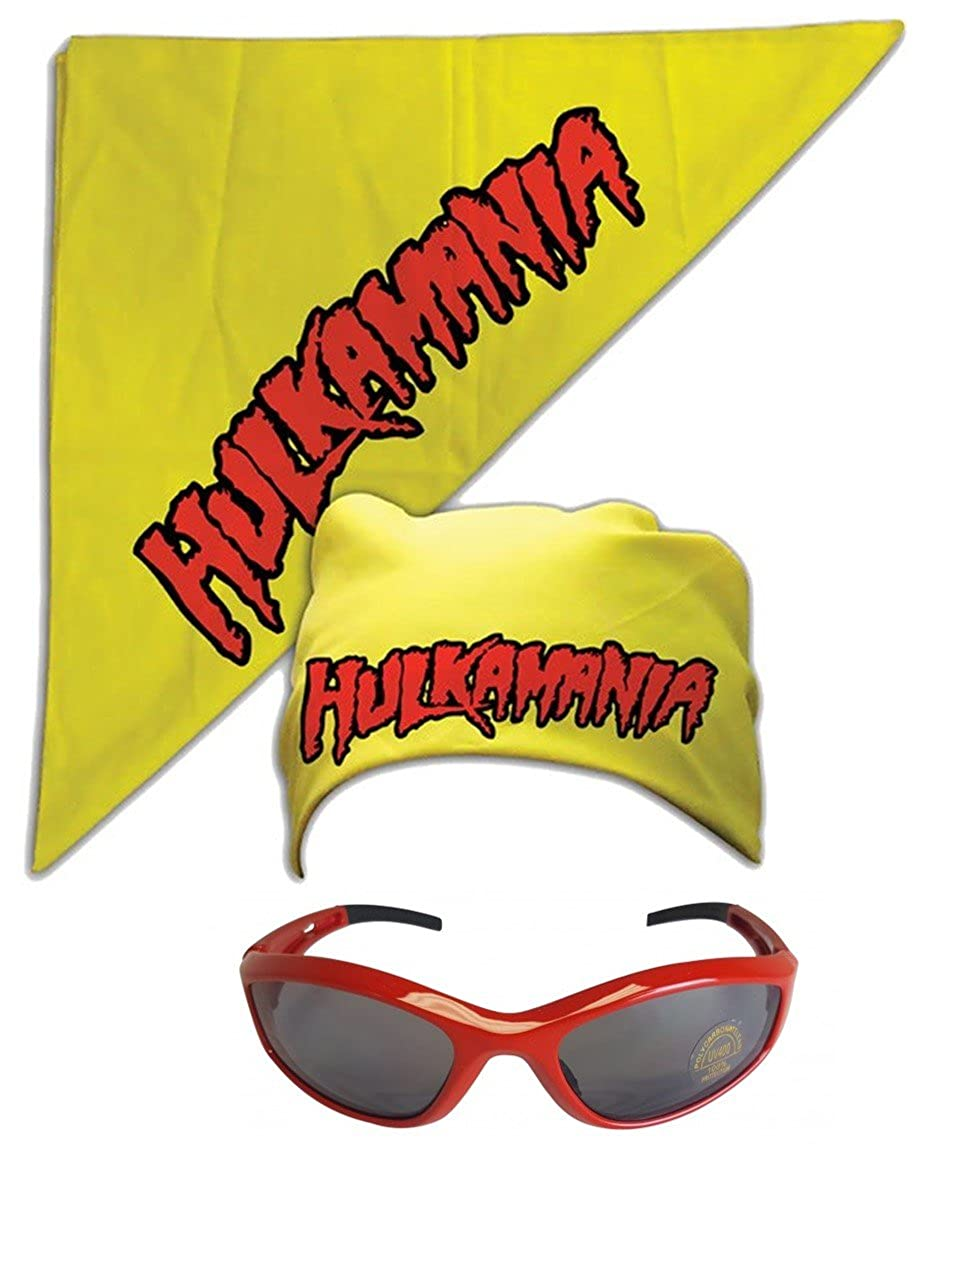 Hulk Hogan Hulkamania Bandana Sunglasses Costume -Yellow-Red